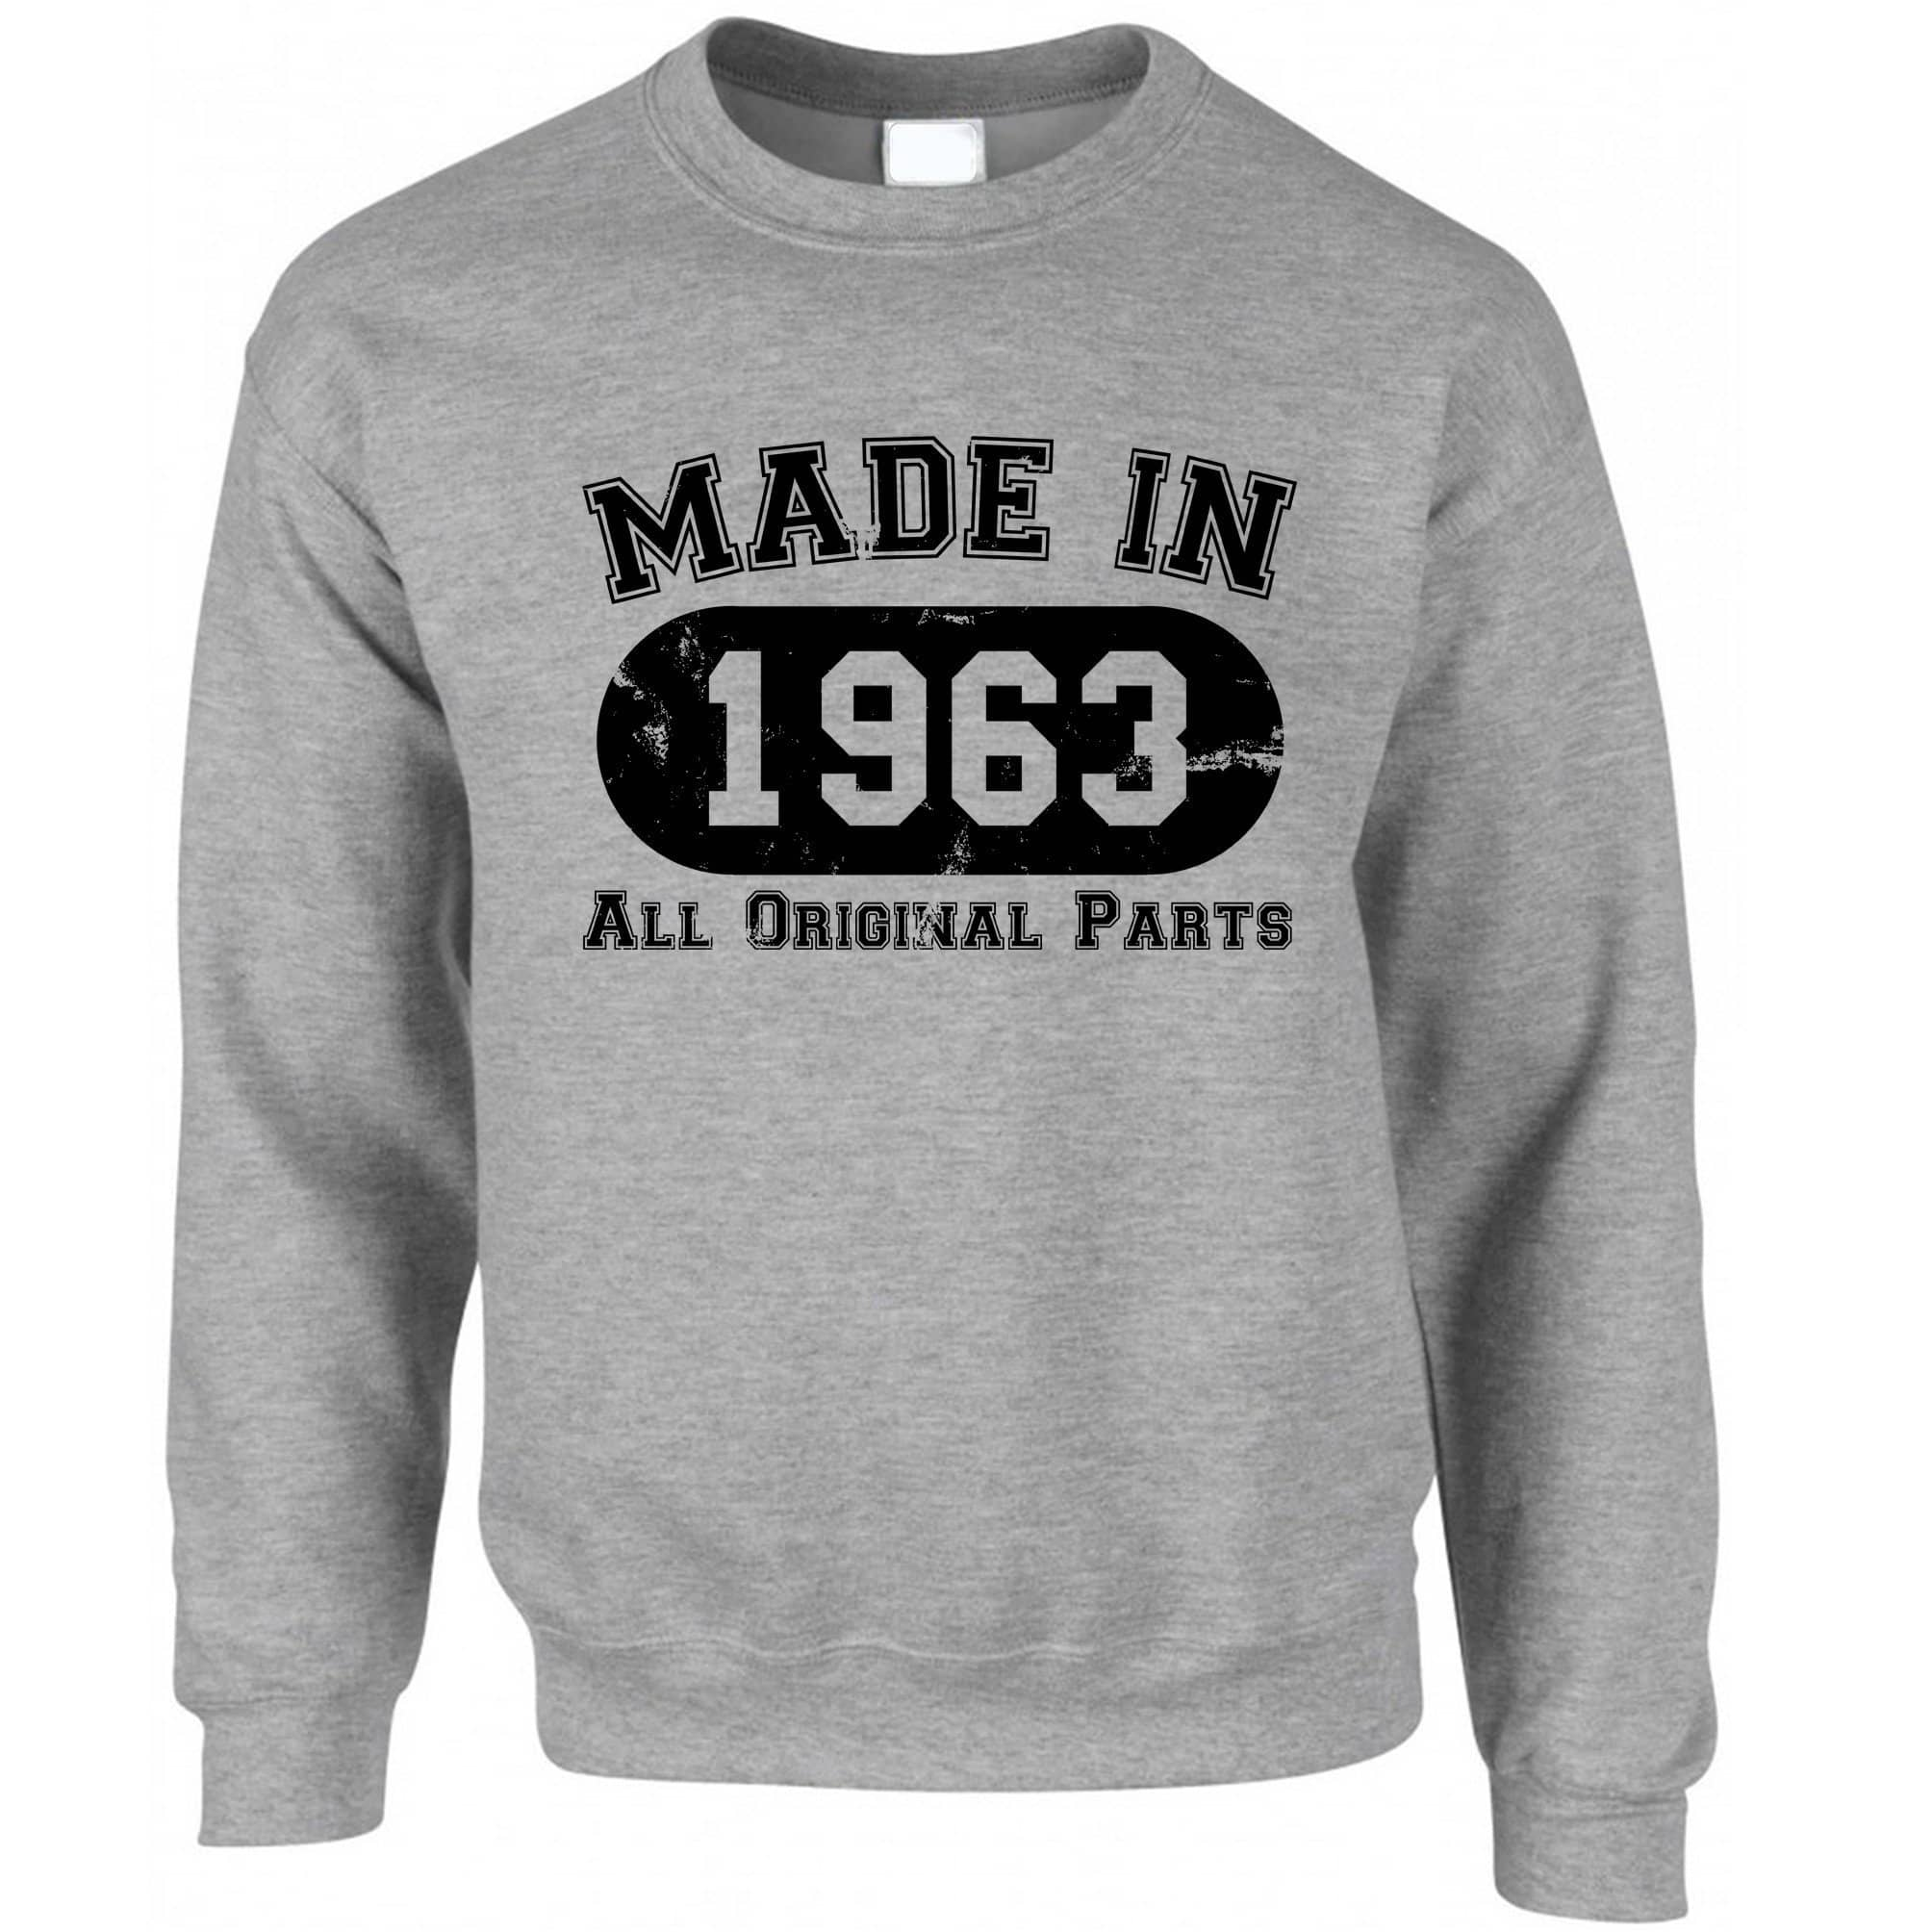 Made in 1963 All Original Parts Sweatshirt Jumper [Distressed]